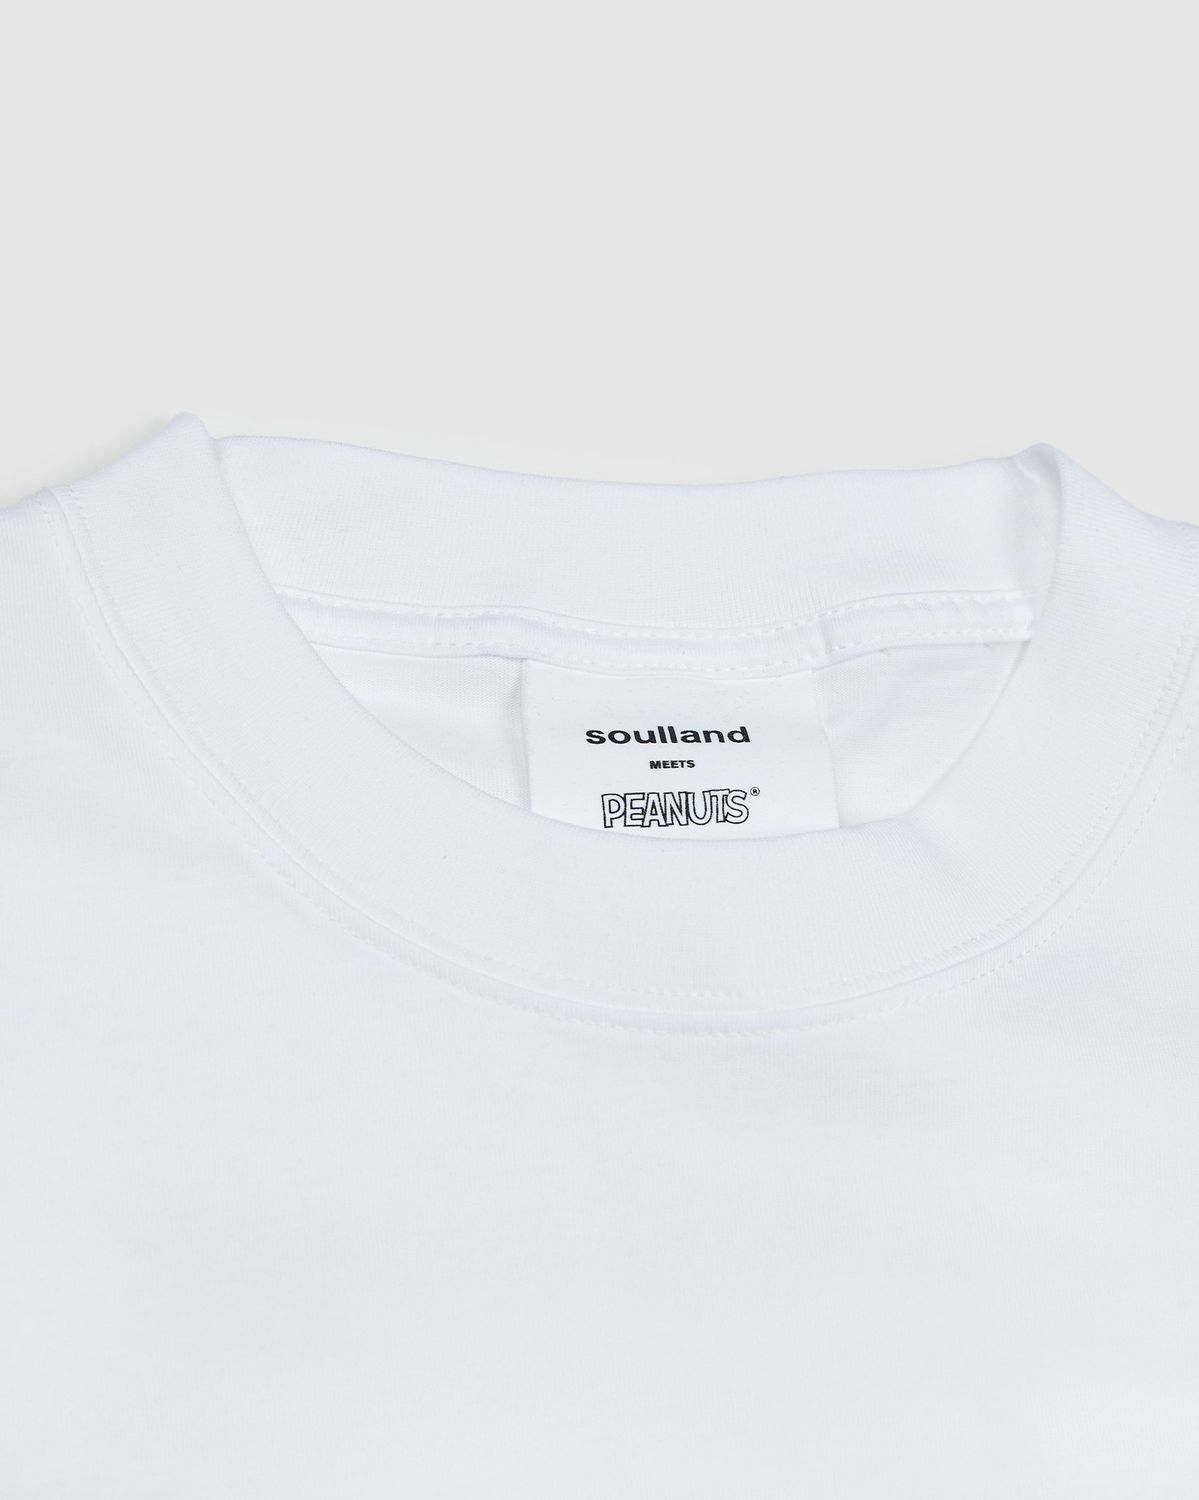 Colette Mon Amour x Soulland —  Snoopy Bed White T-Shirt - Image 3